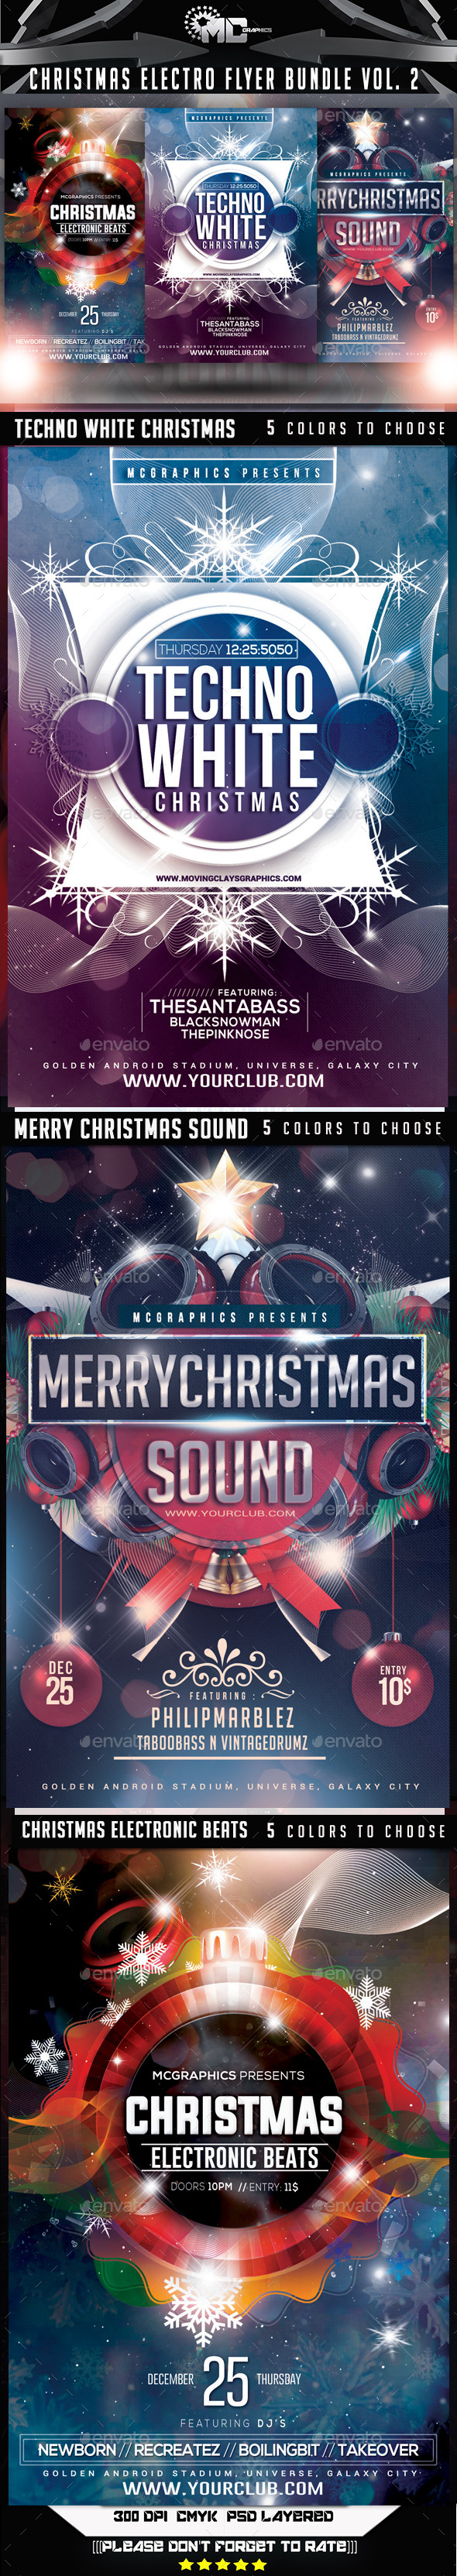 Christmas Electro Flyer Bundle Vol 2